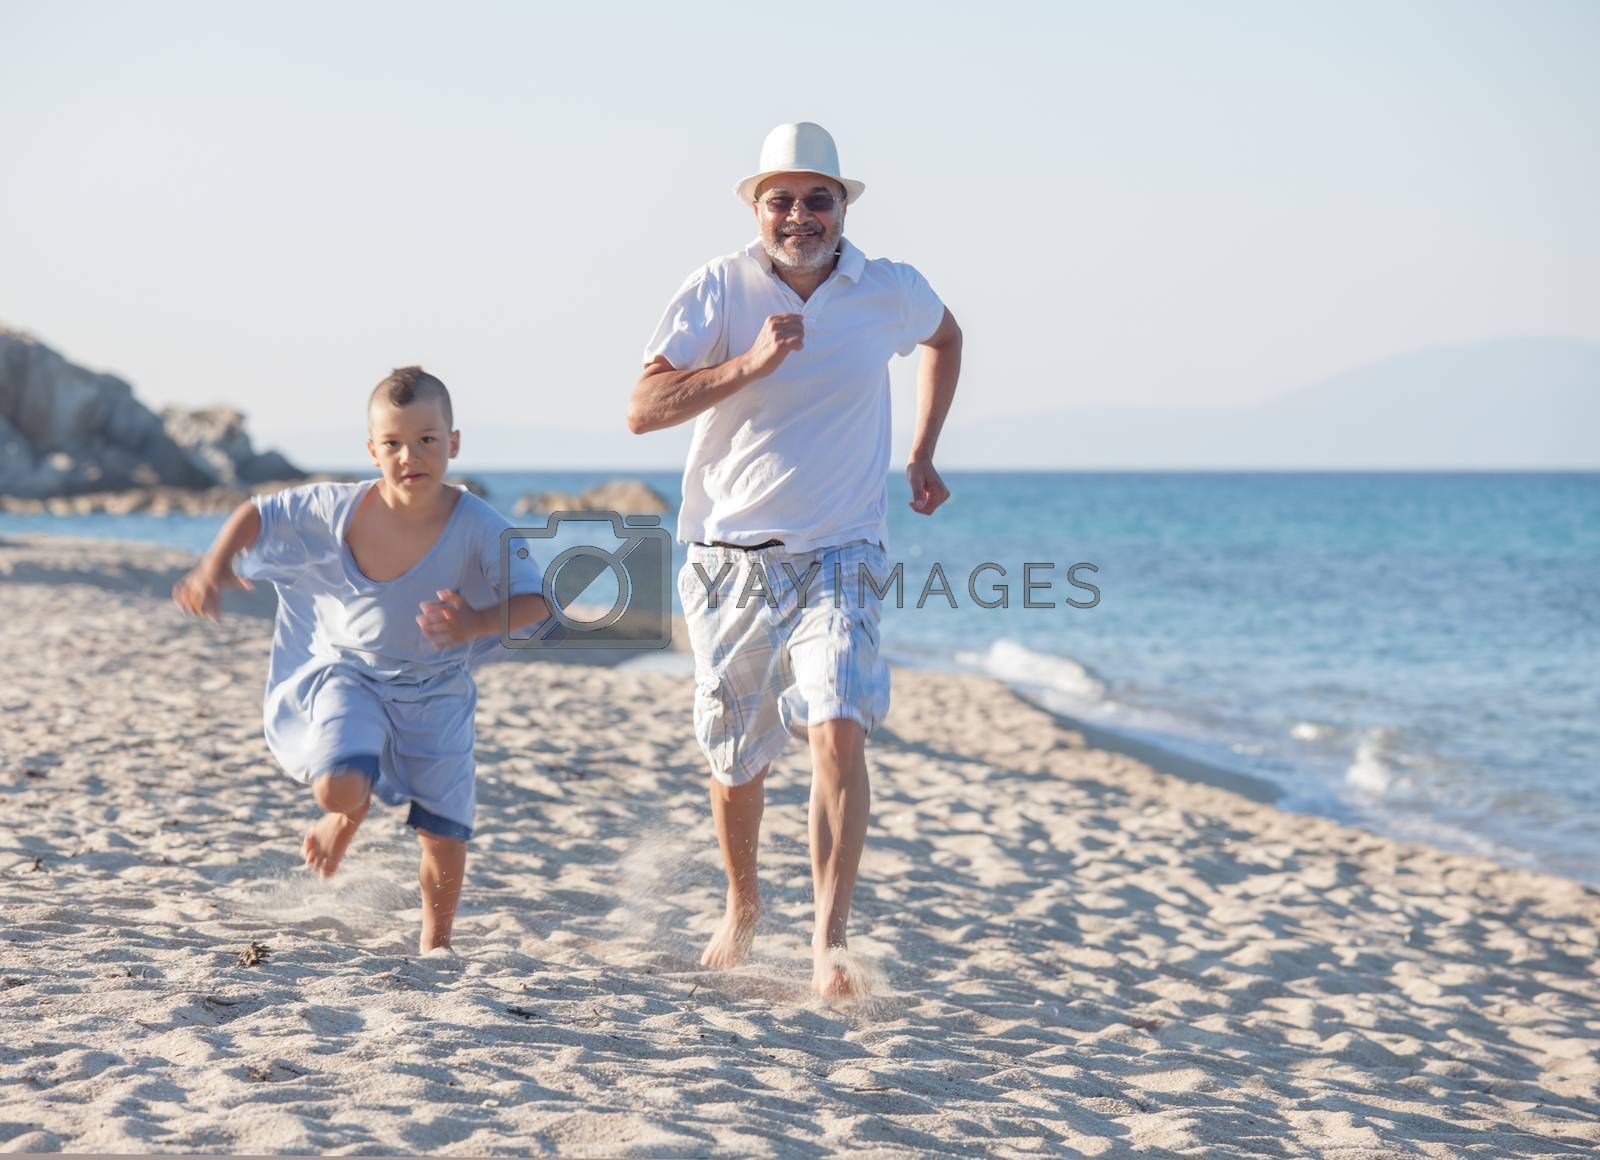 Royalty free image of Competition Beach Sea Grandfather Generations Grandson Running by vilevi